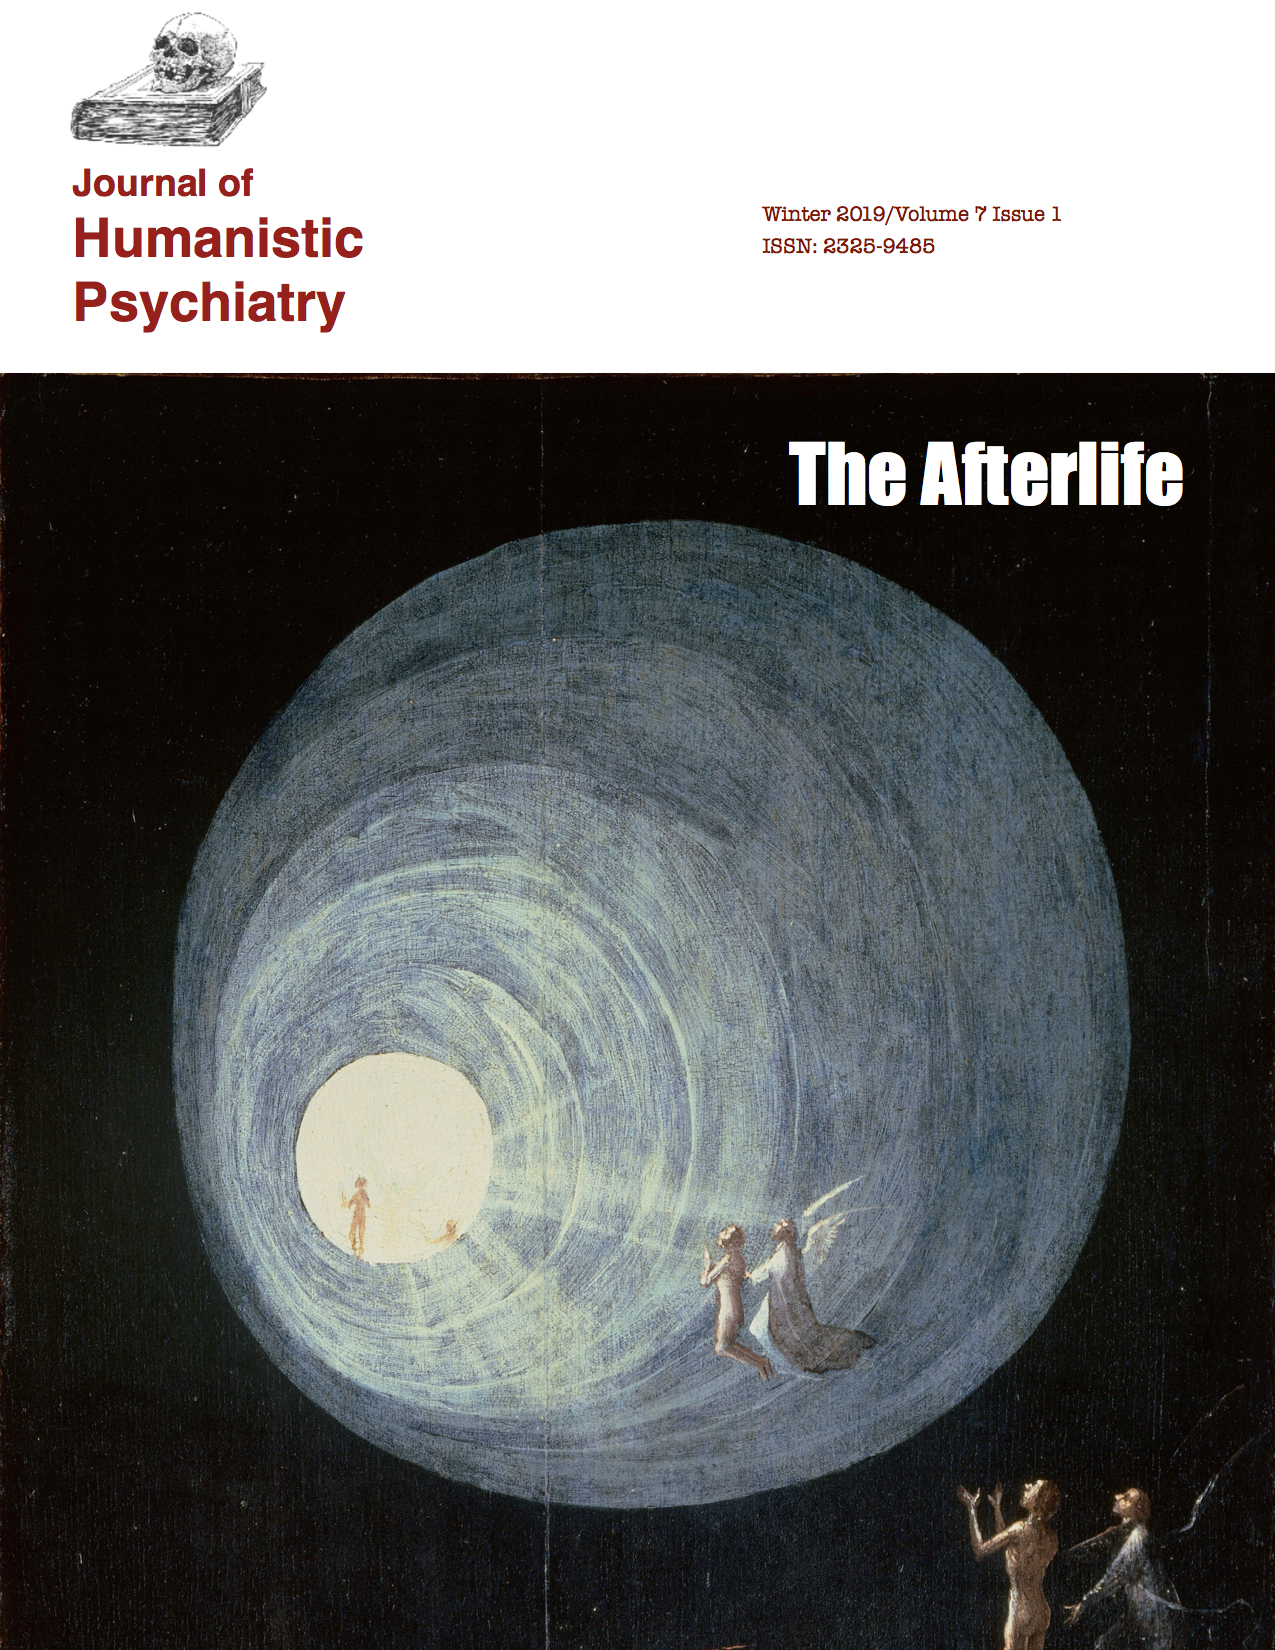 JHP - The Afterlife cover